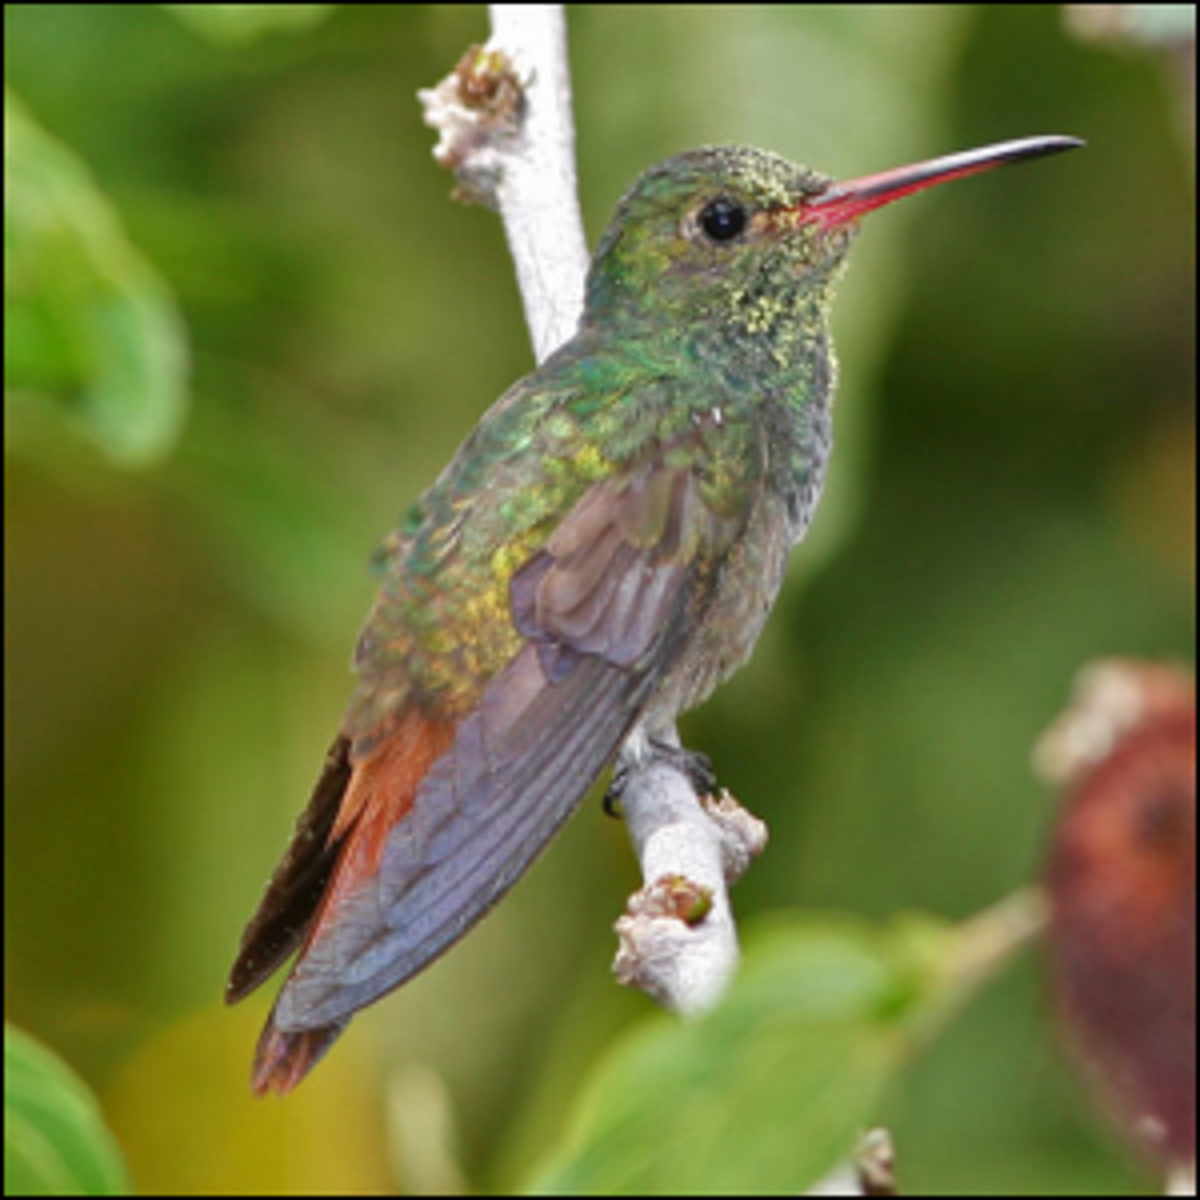 A Rufous-Tailed Hummingbird perched on a tree limb in Venezuela.